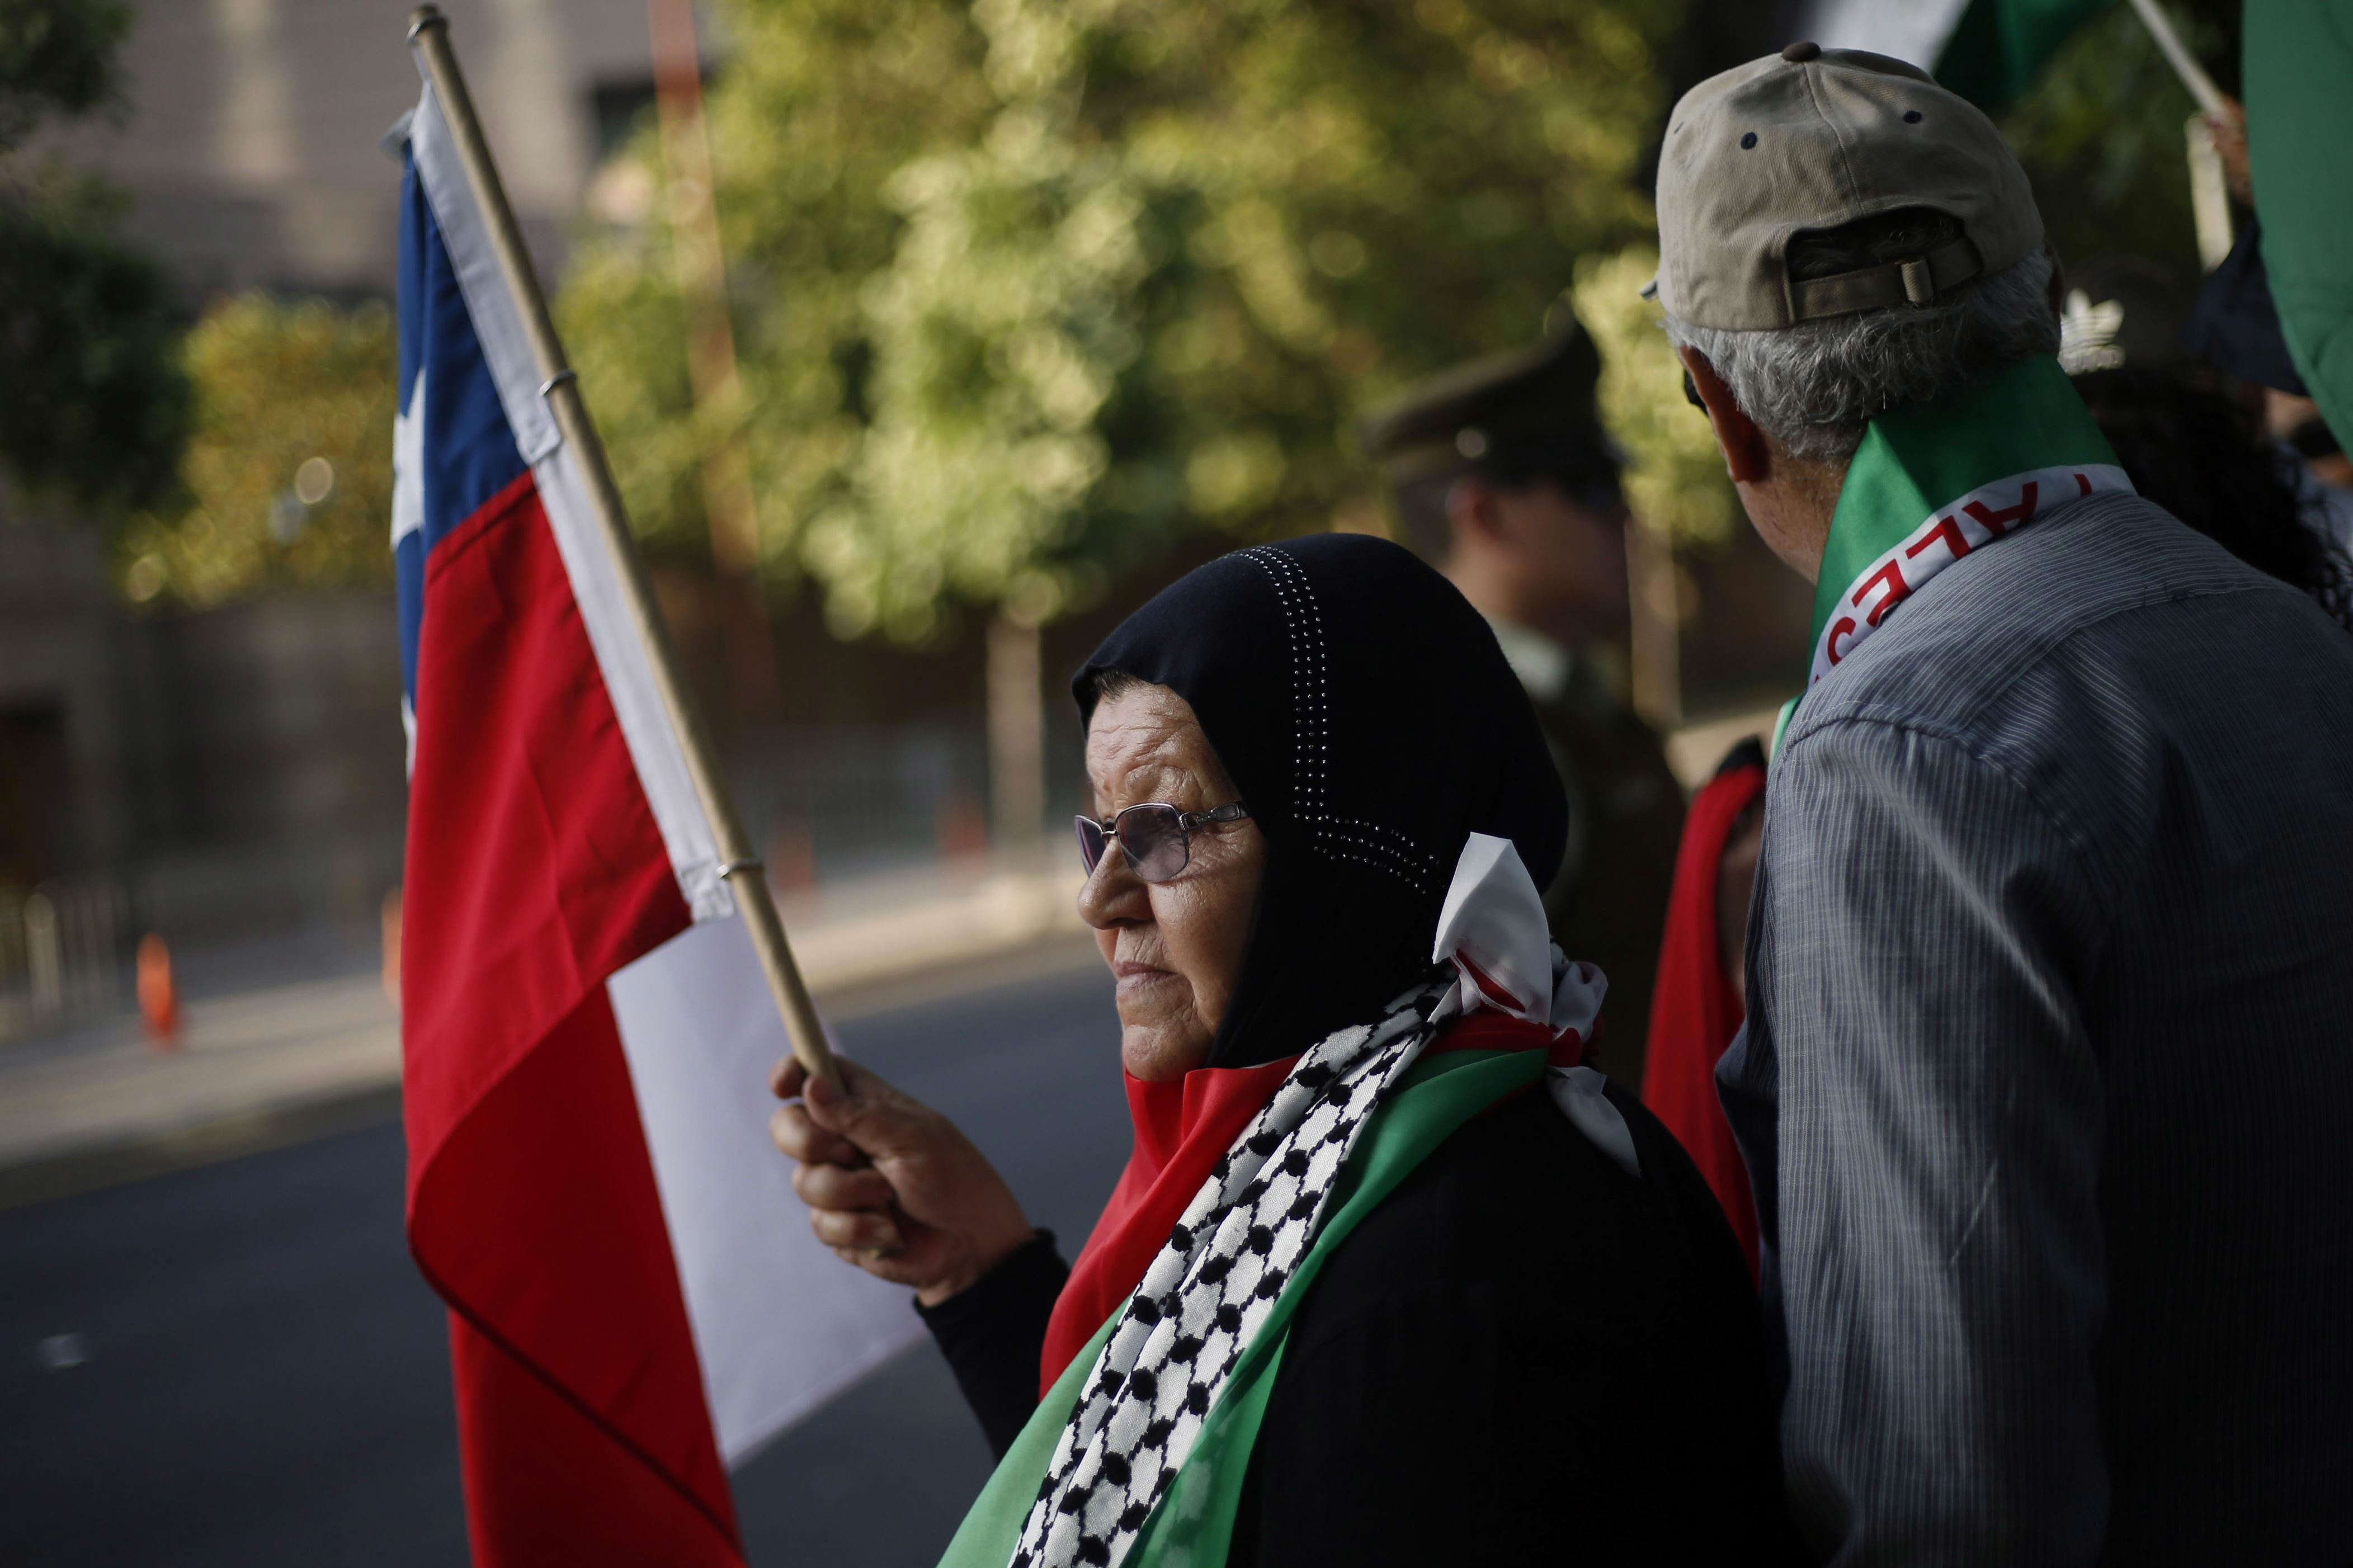 Slide 31 of 35: Chilean supporters of Palestine and Palestinians protest against U.S. President Donald Trump's recognition of Jerusalem as the capital of Israel, in front of the United States embassy in Santiago on December 11, 2017. / AFP PHOTO / Pablo VERA        (Photo credit should read PABLO VERA/AFP/Getty Images)